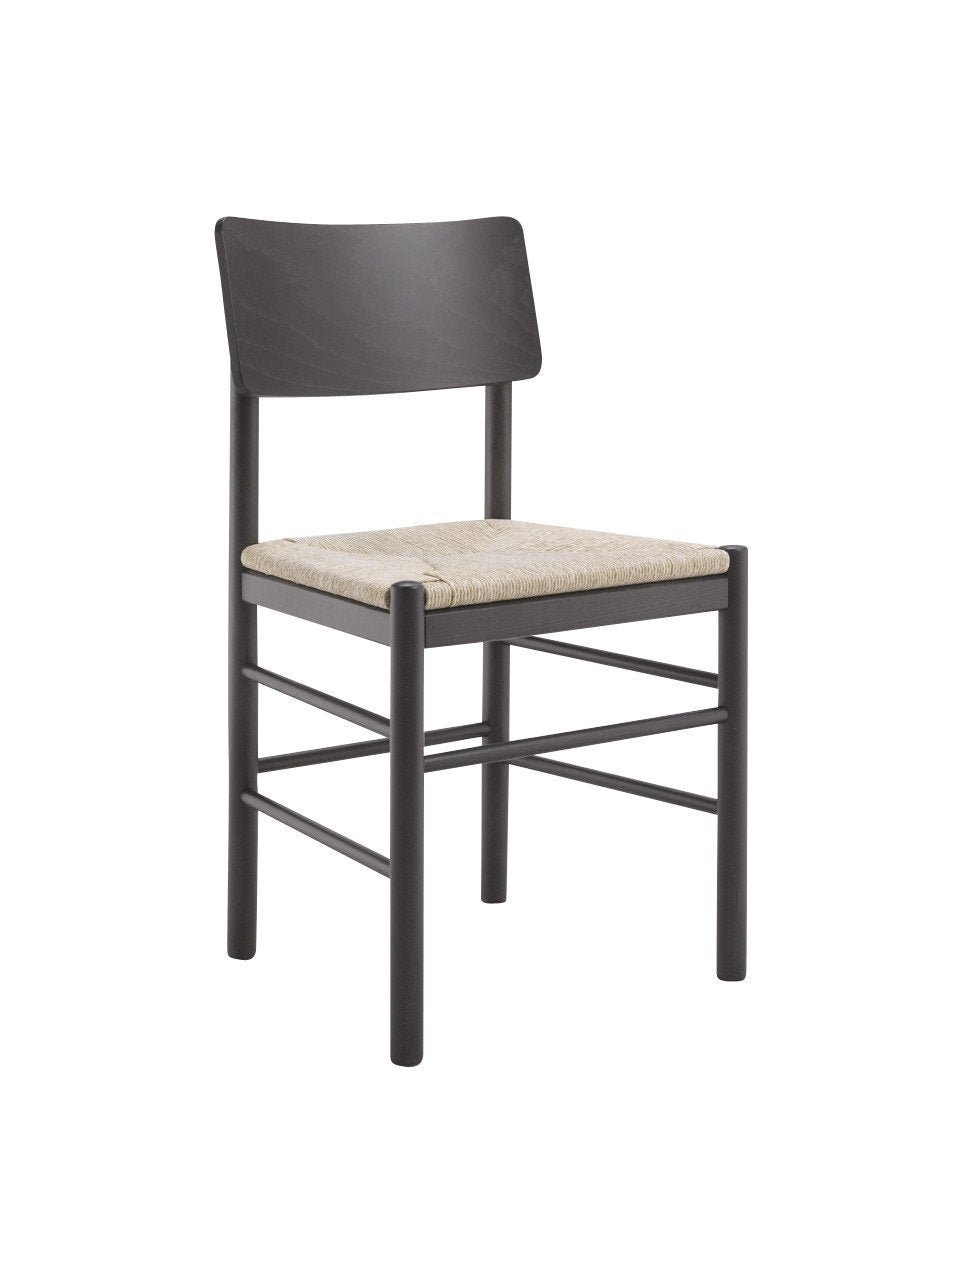 Malina Olivia Side Chair Contract Furniture Store